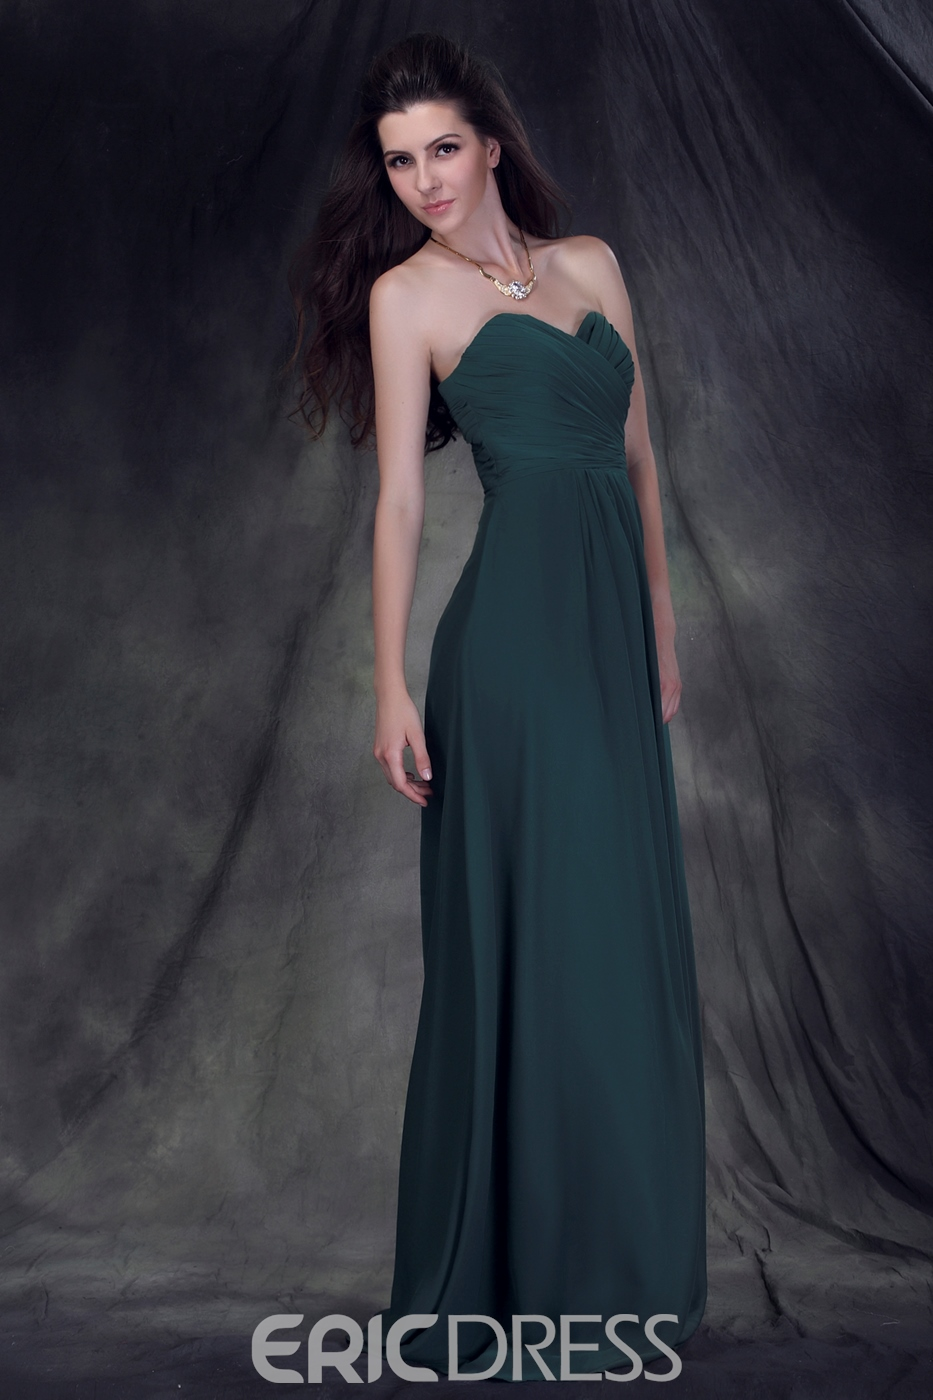 Exquisite Ruched A-Line Strapless Sleeveless Floor-Length Anderai's Bridesmaid Dress